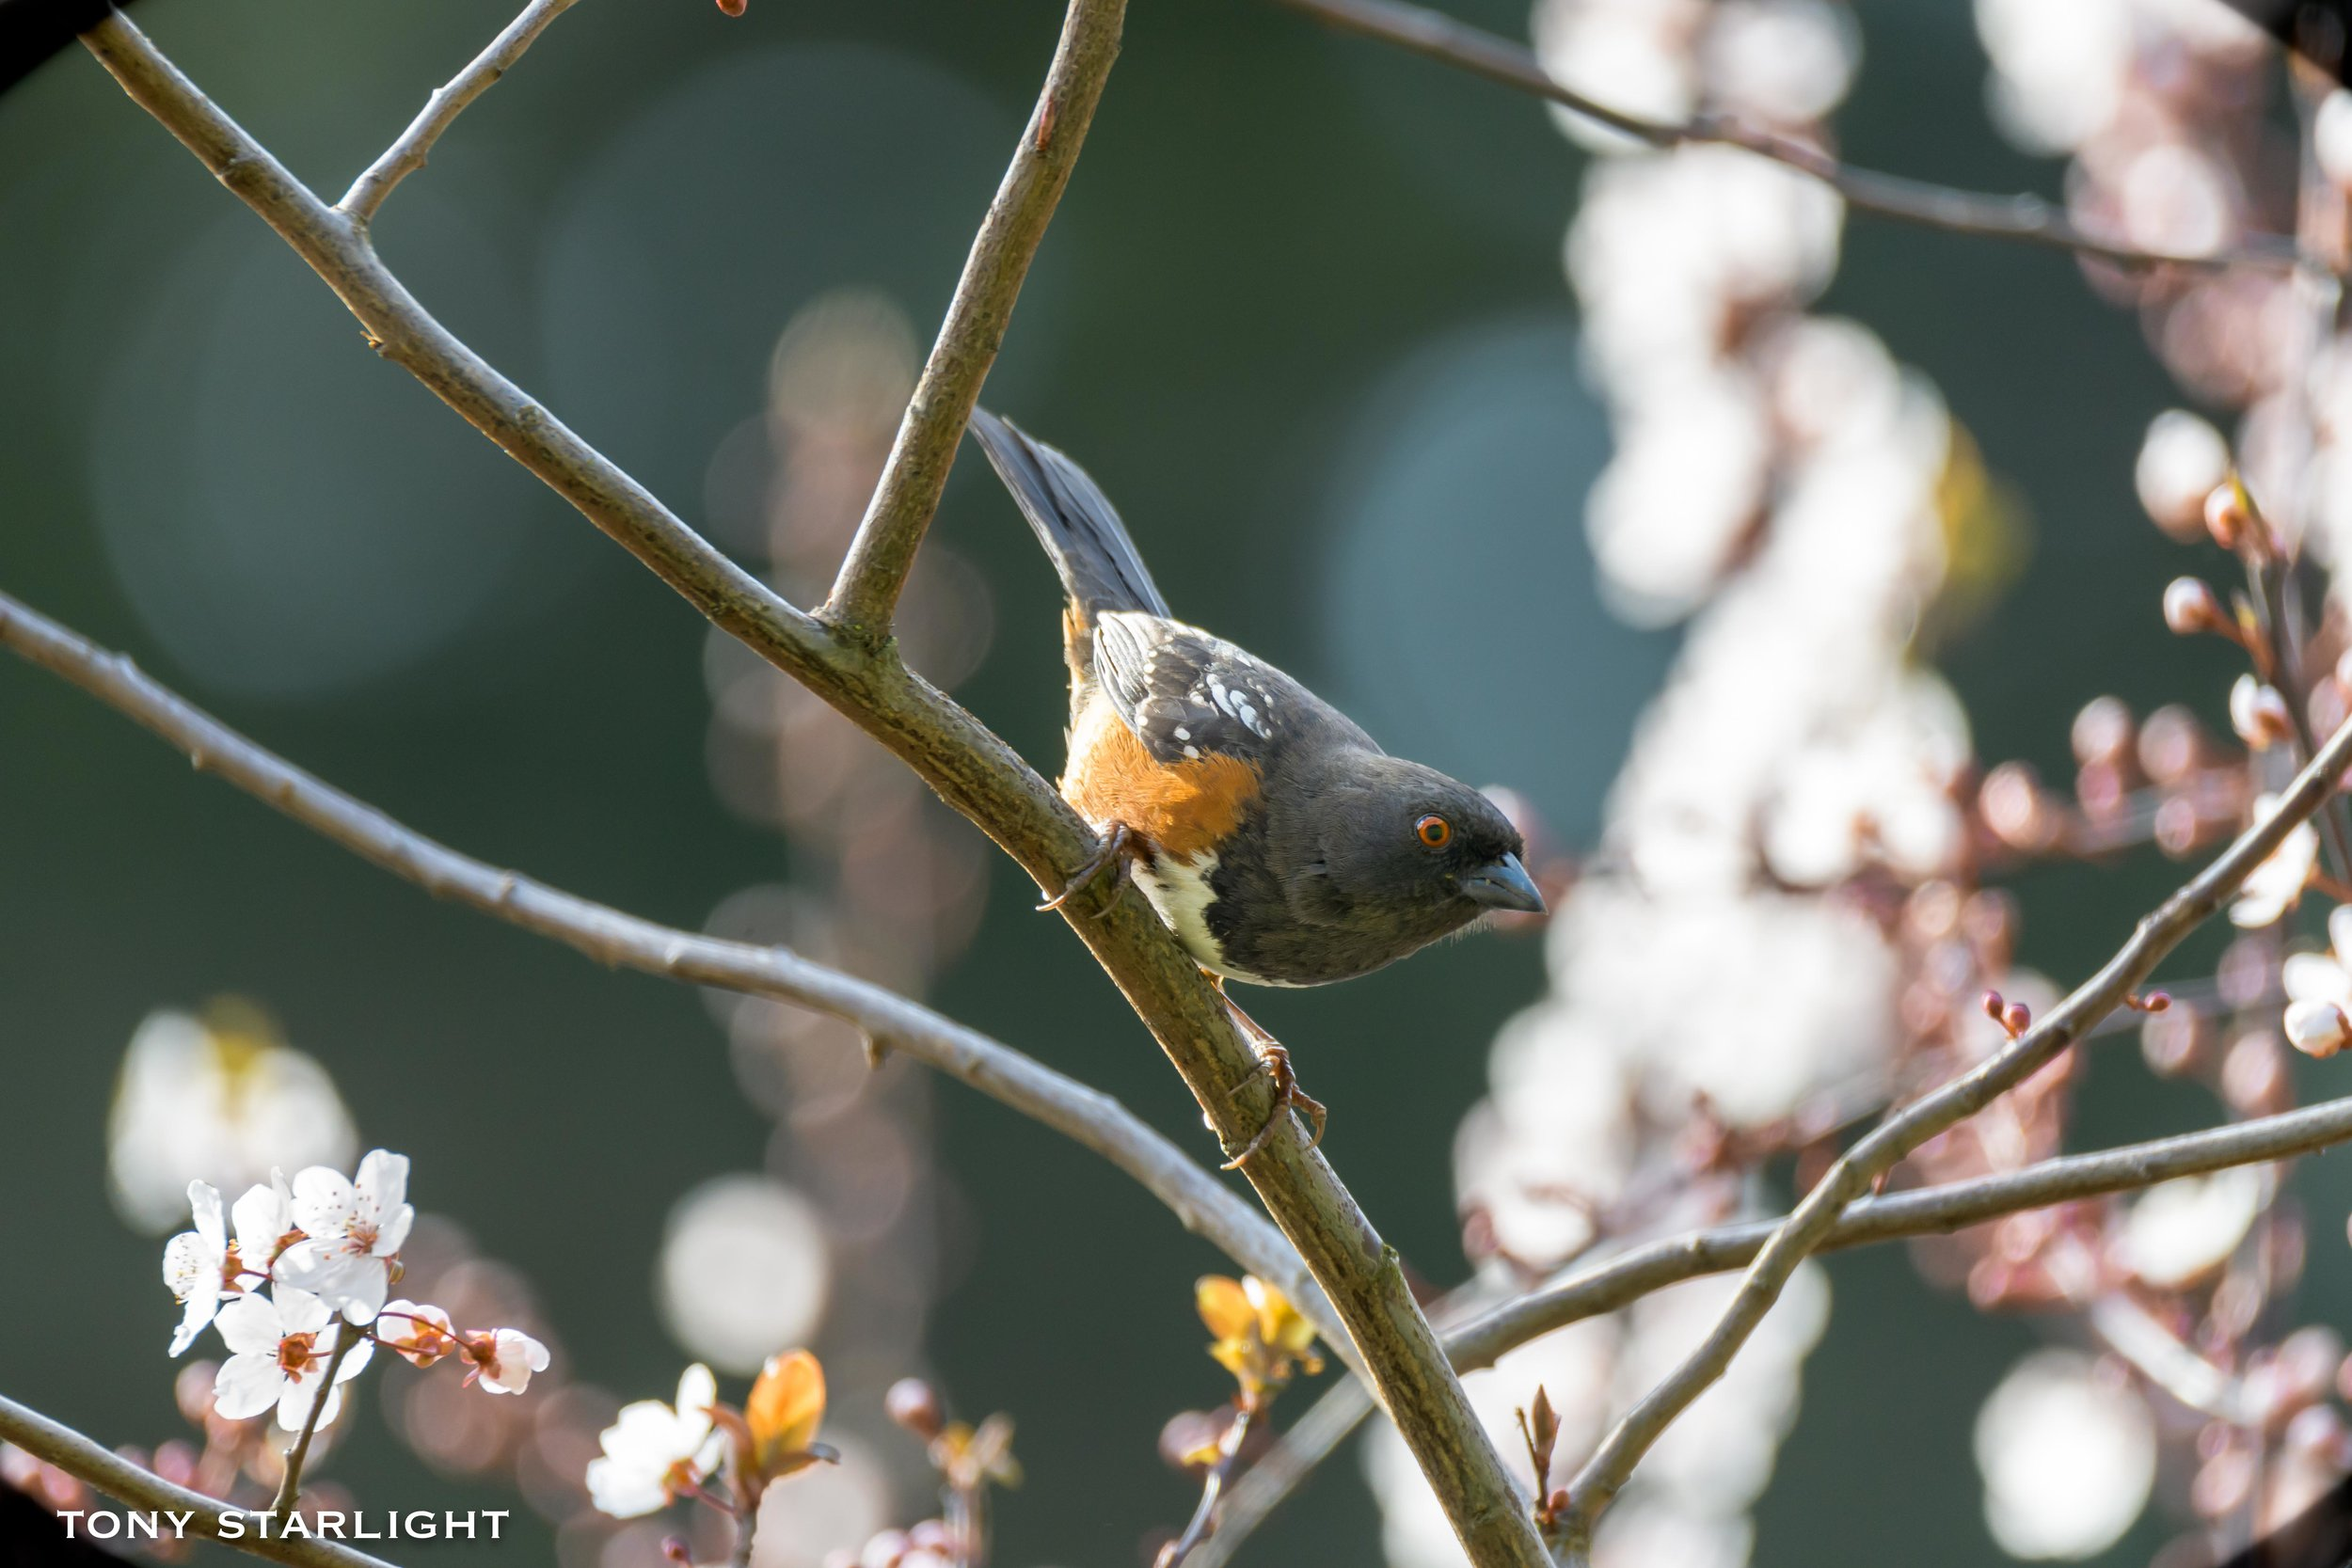 Spotted Towhee - When someone has wings and they're threatening to jump, it's a bit melodramatic.